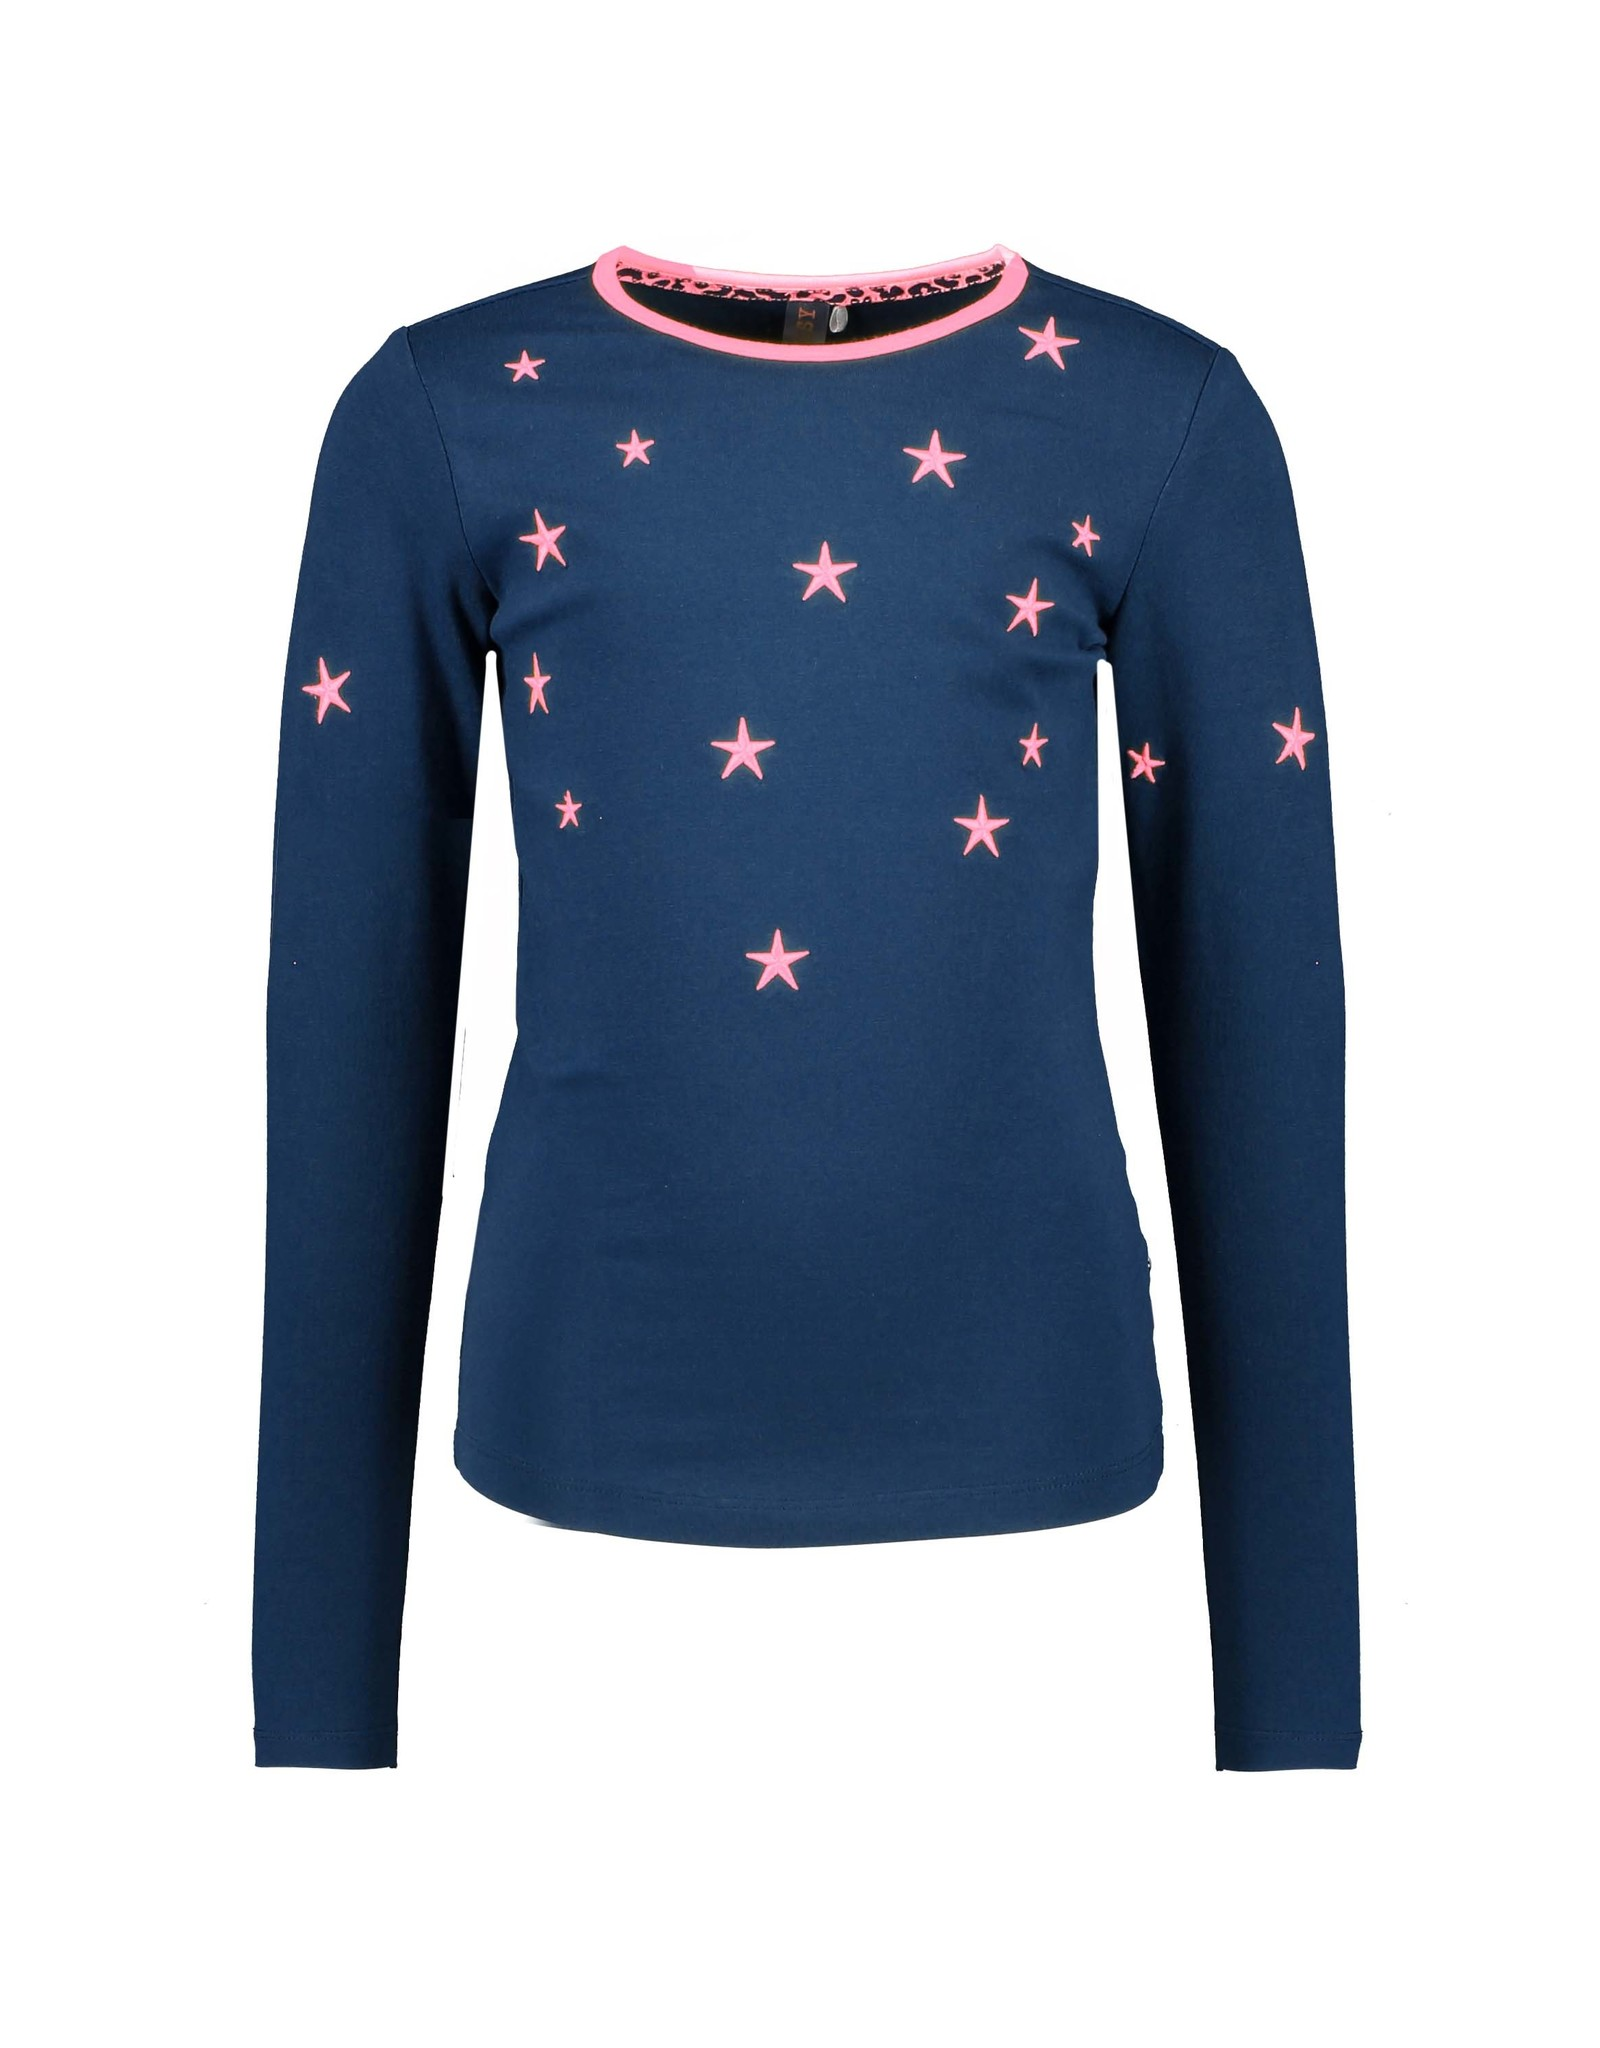 B-Nosy Girls t-shirt with embroidered stars around neck, space blue